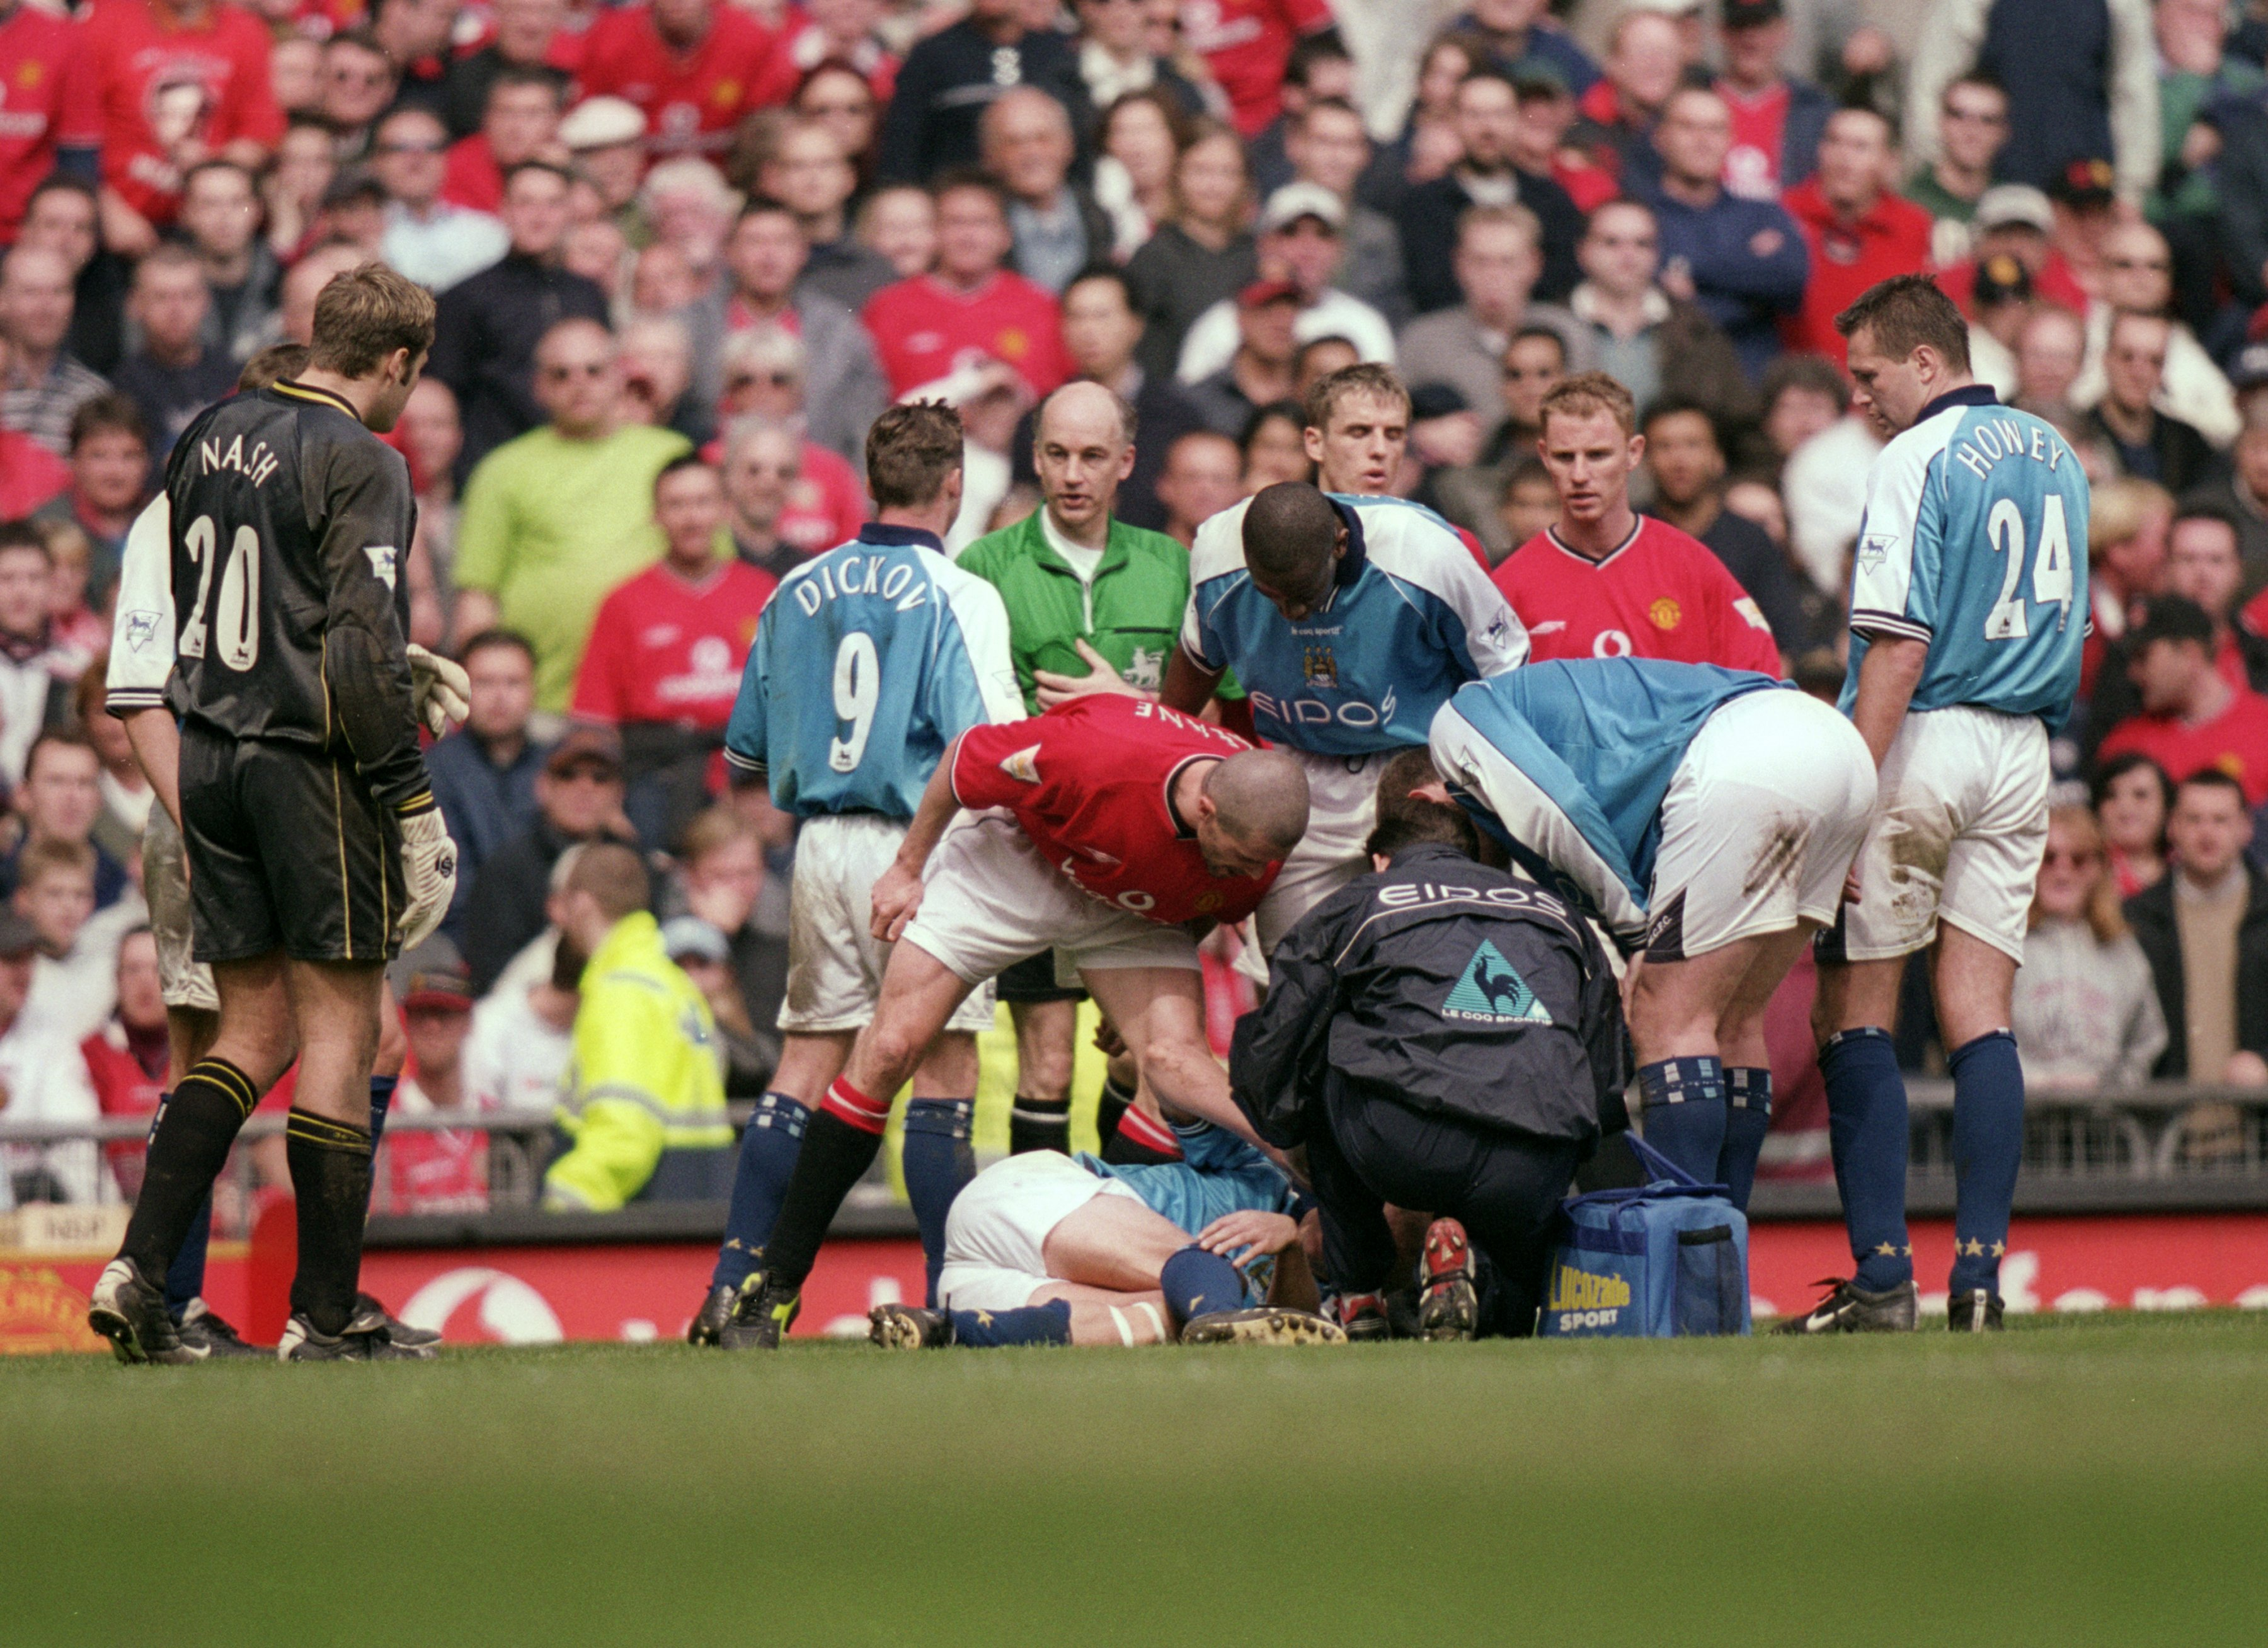 21 Apr 2001:  Roy Keane of Manchester United shouts at Alf Inge Haaland of Manchester City following his red card during the FA Carling Premiership match played at Old Trafford, in Manchester, England. The match ended in a 1-1 draw. \ Mandatory Credit: Ga